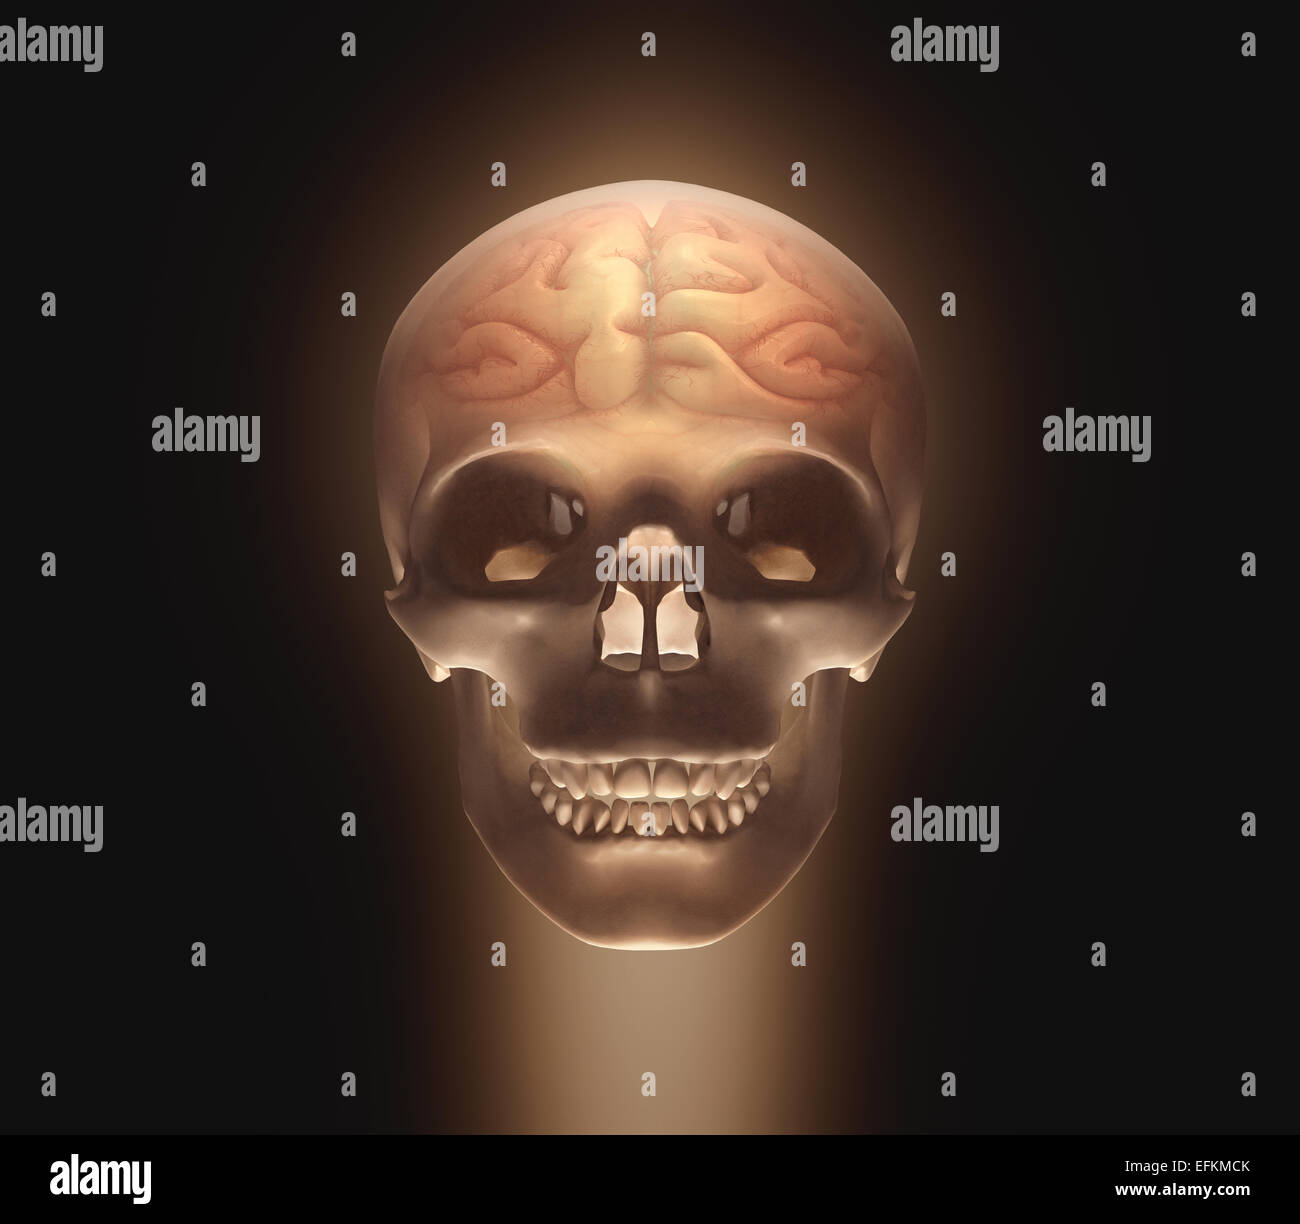 Skull with a brain inside. Clipping path included. - Stock Image